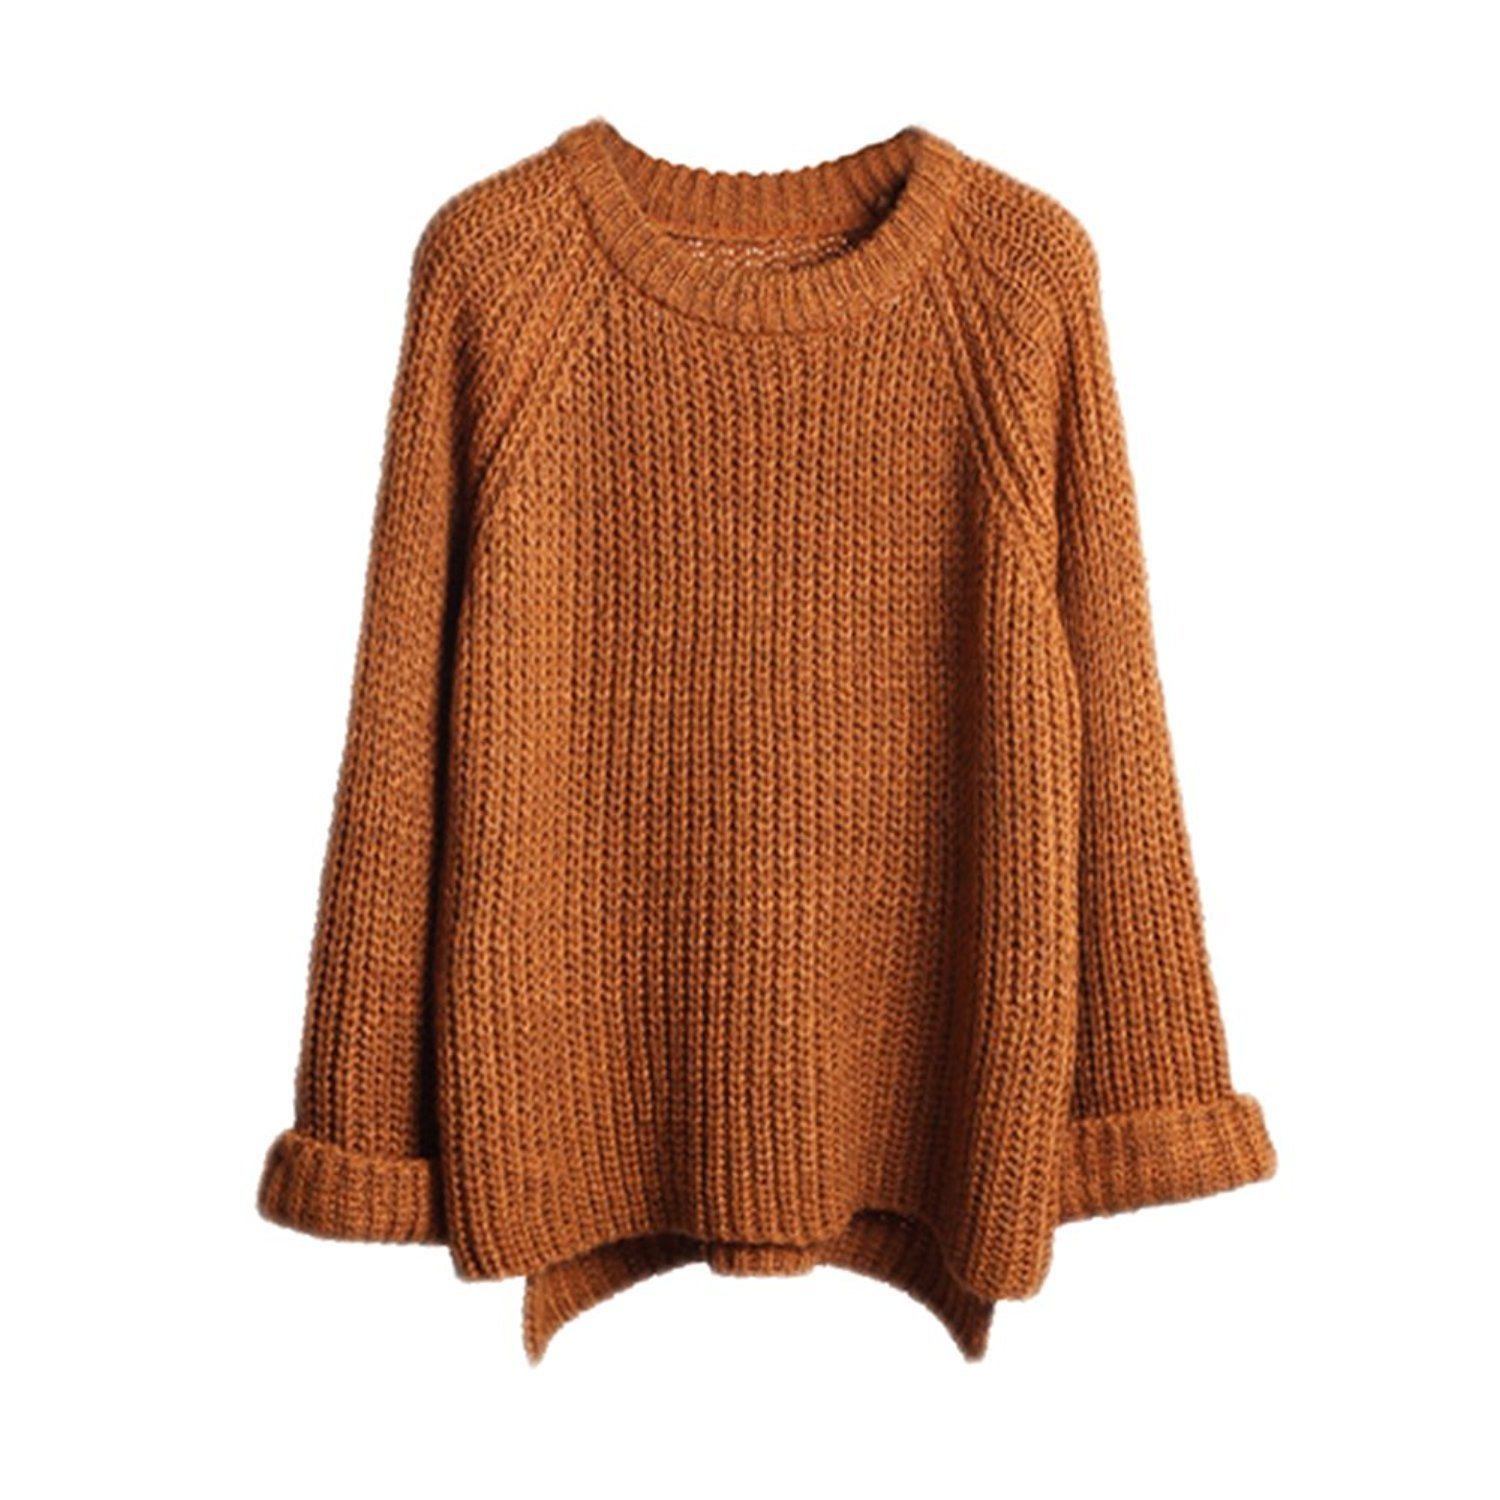 knitted sweaters lisli womenu0027s batwing sleeve loose oversized pullover knitted sweater  (coffee) at amazon ydhyfai